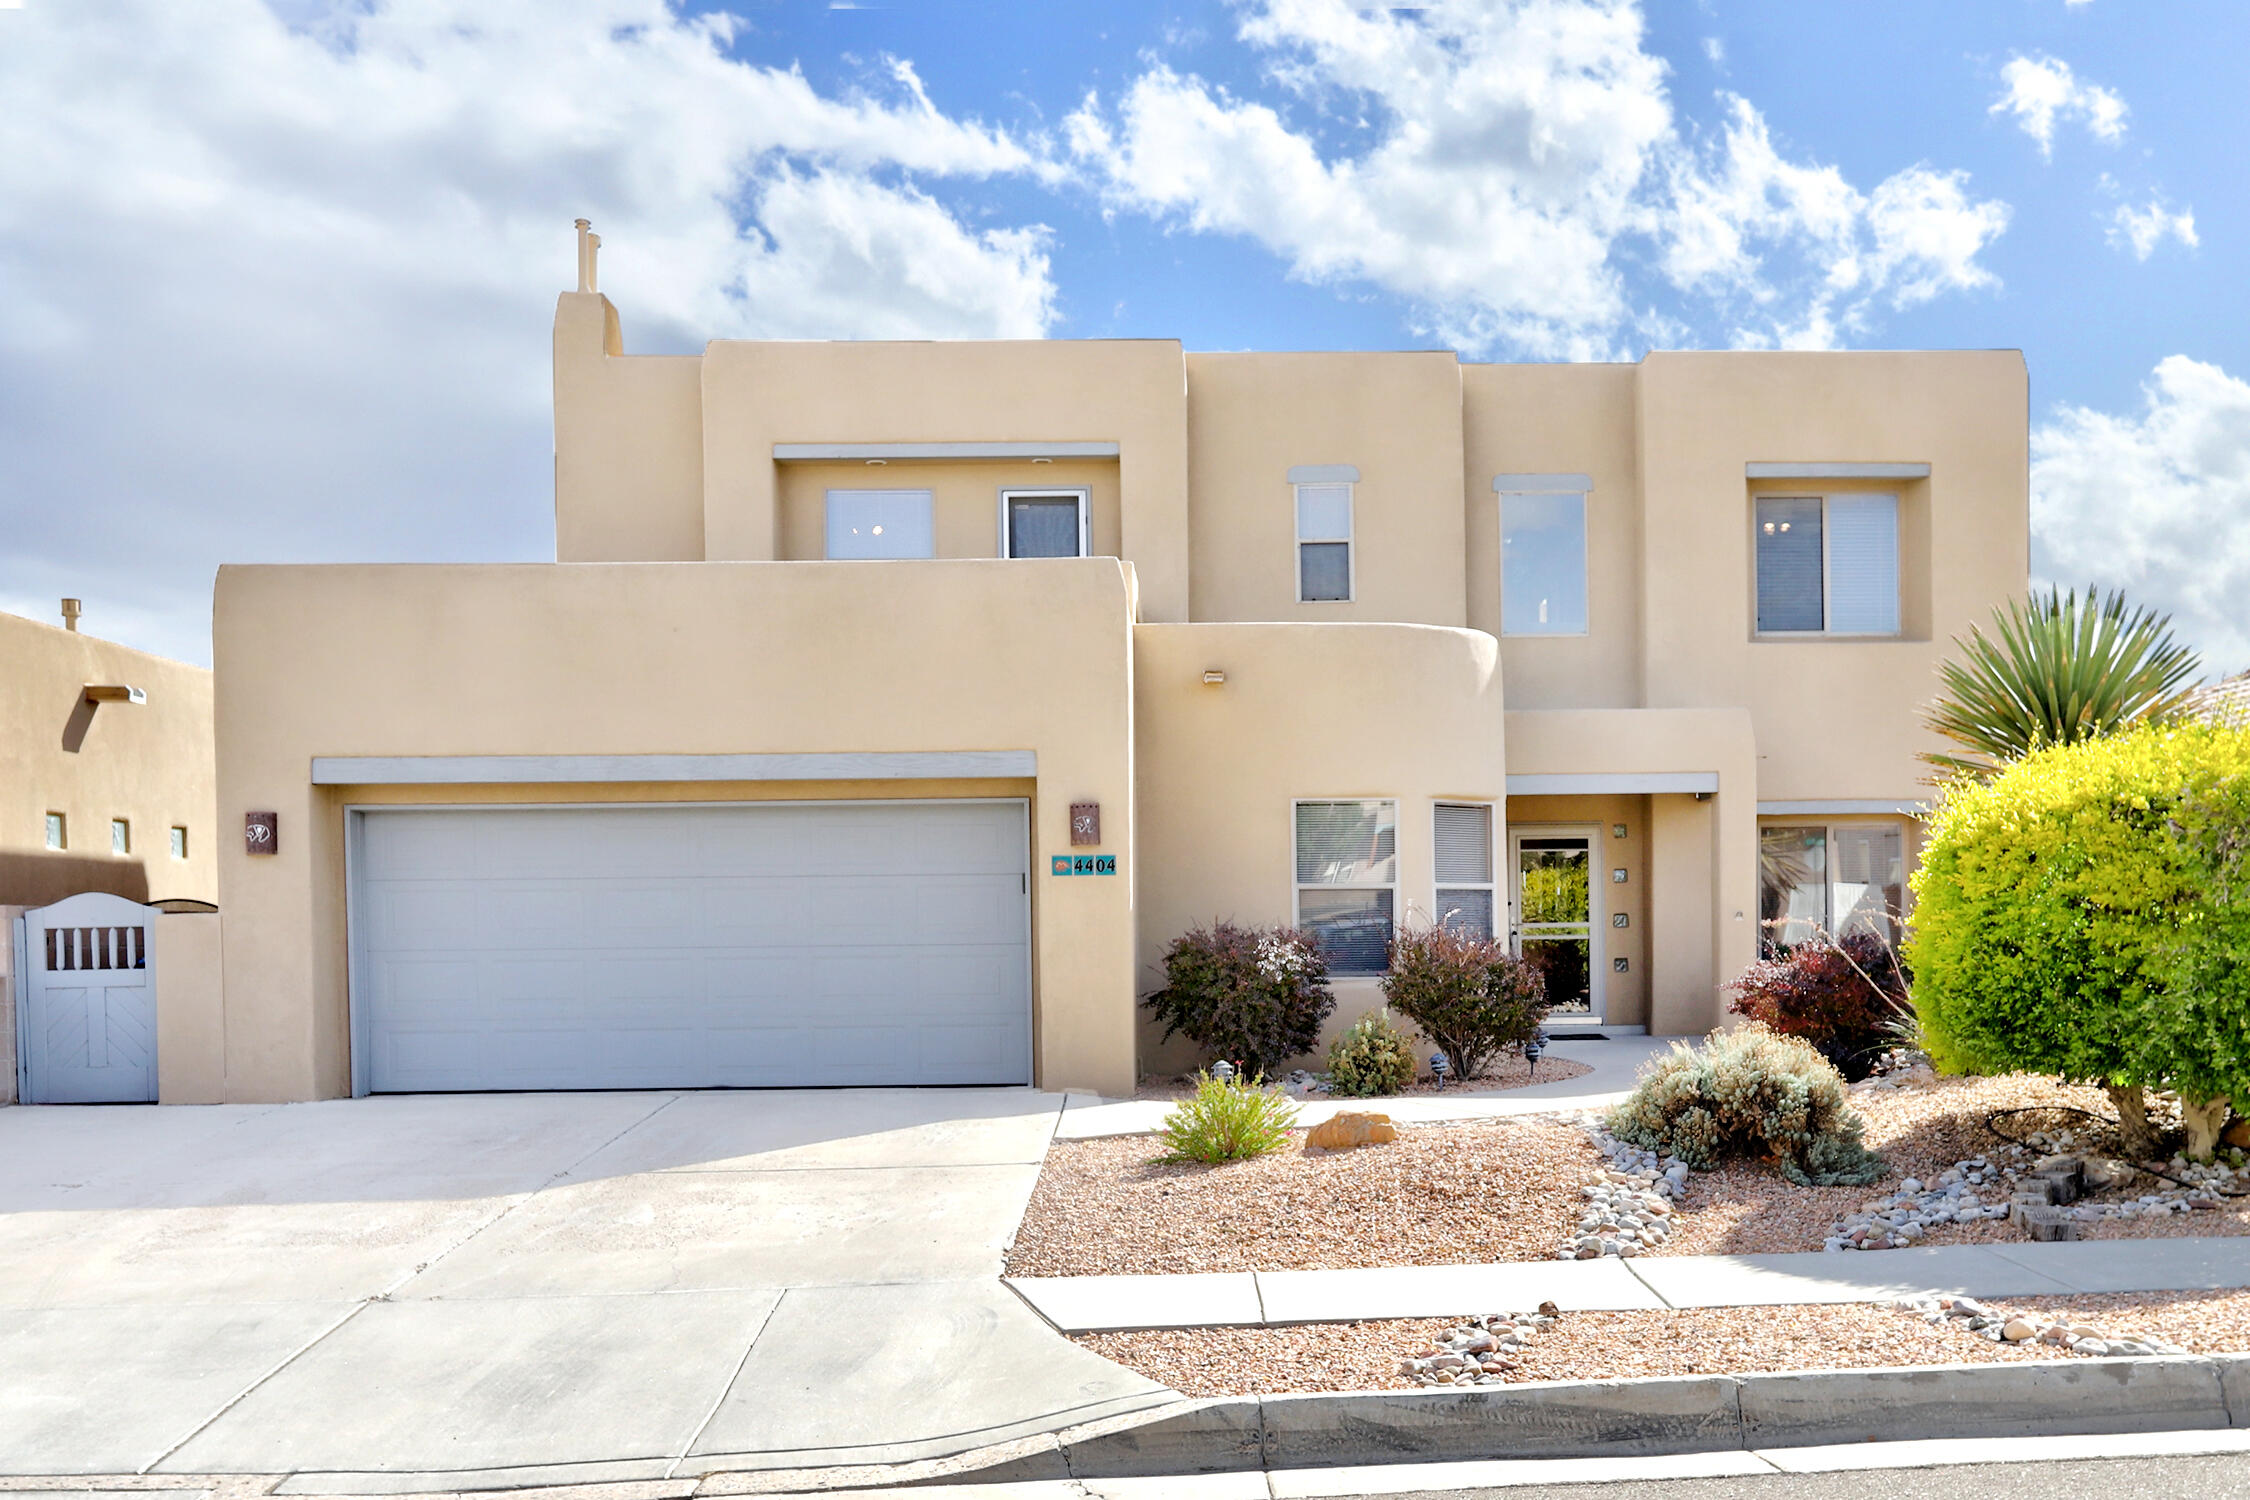 Beautiful custom built home with numerous upgrades. Just a few: Clerestory windows with power shades, Bose sound system speakers inside and out, new furnace, new TPO roof, central vac, Your own OWNED solar system(!) an extra long covered patio with tile floors, BBQ with attached natural gas line and 2 roll down Sunshades. The refrigerated air unit is only one year old.